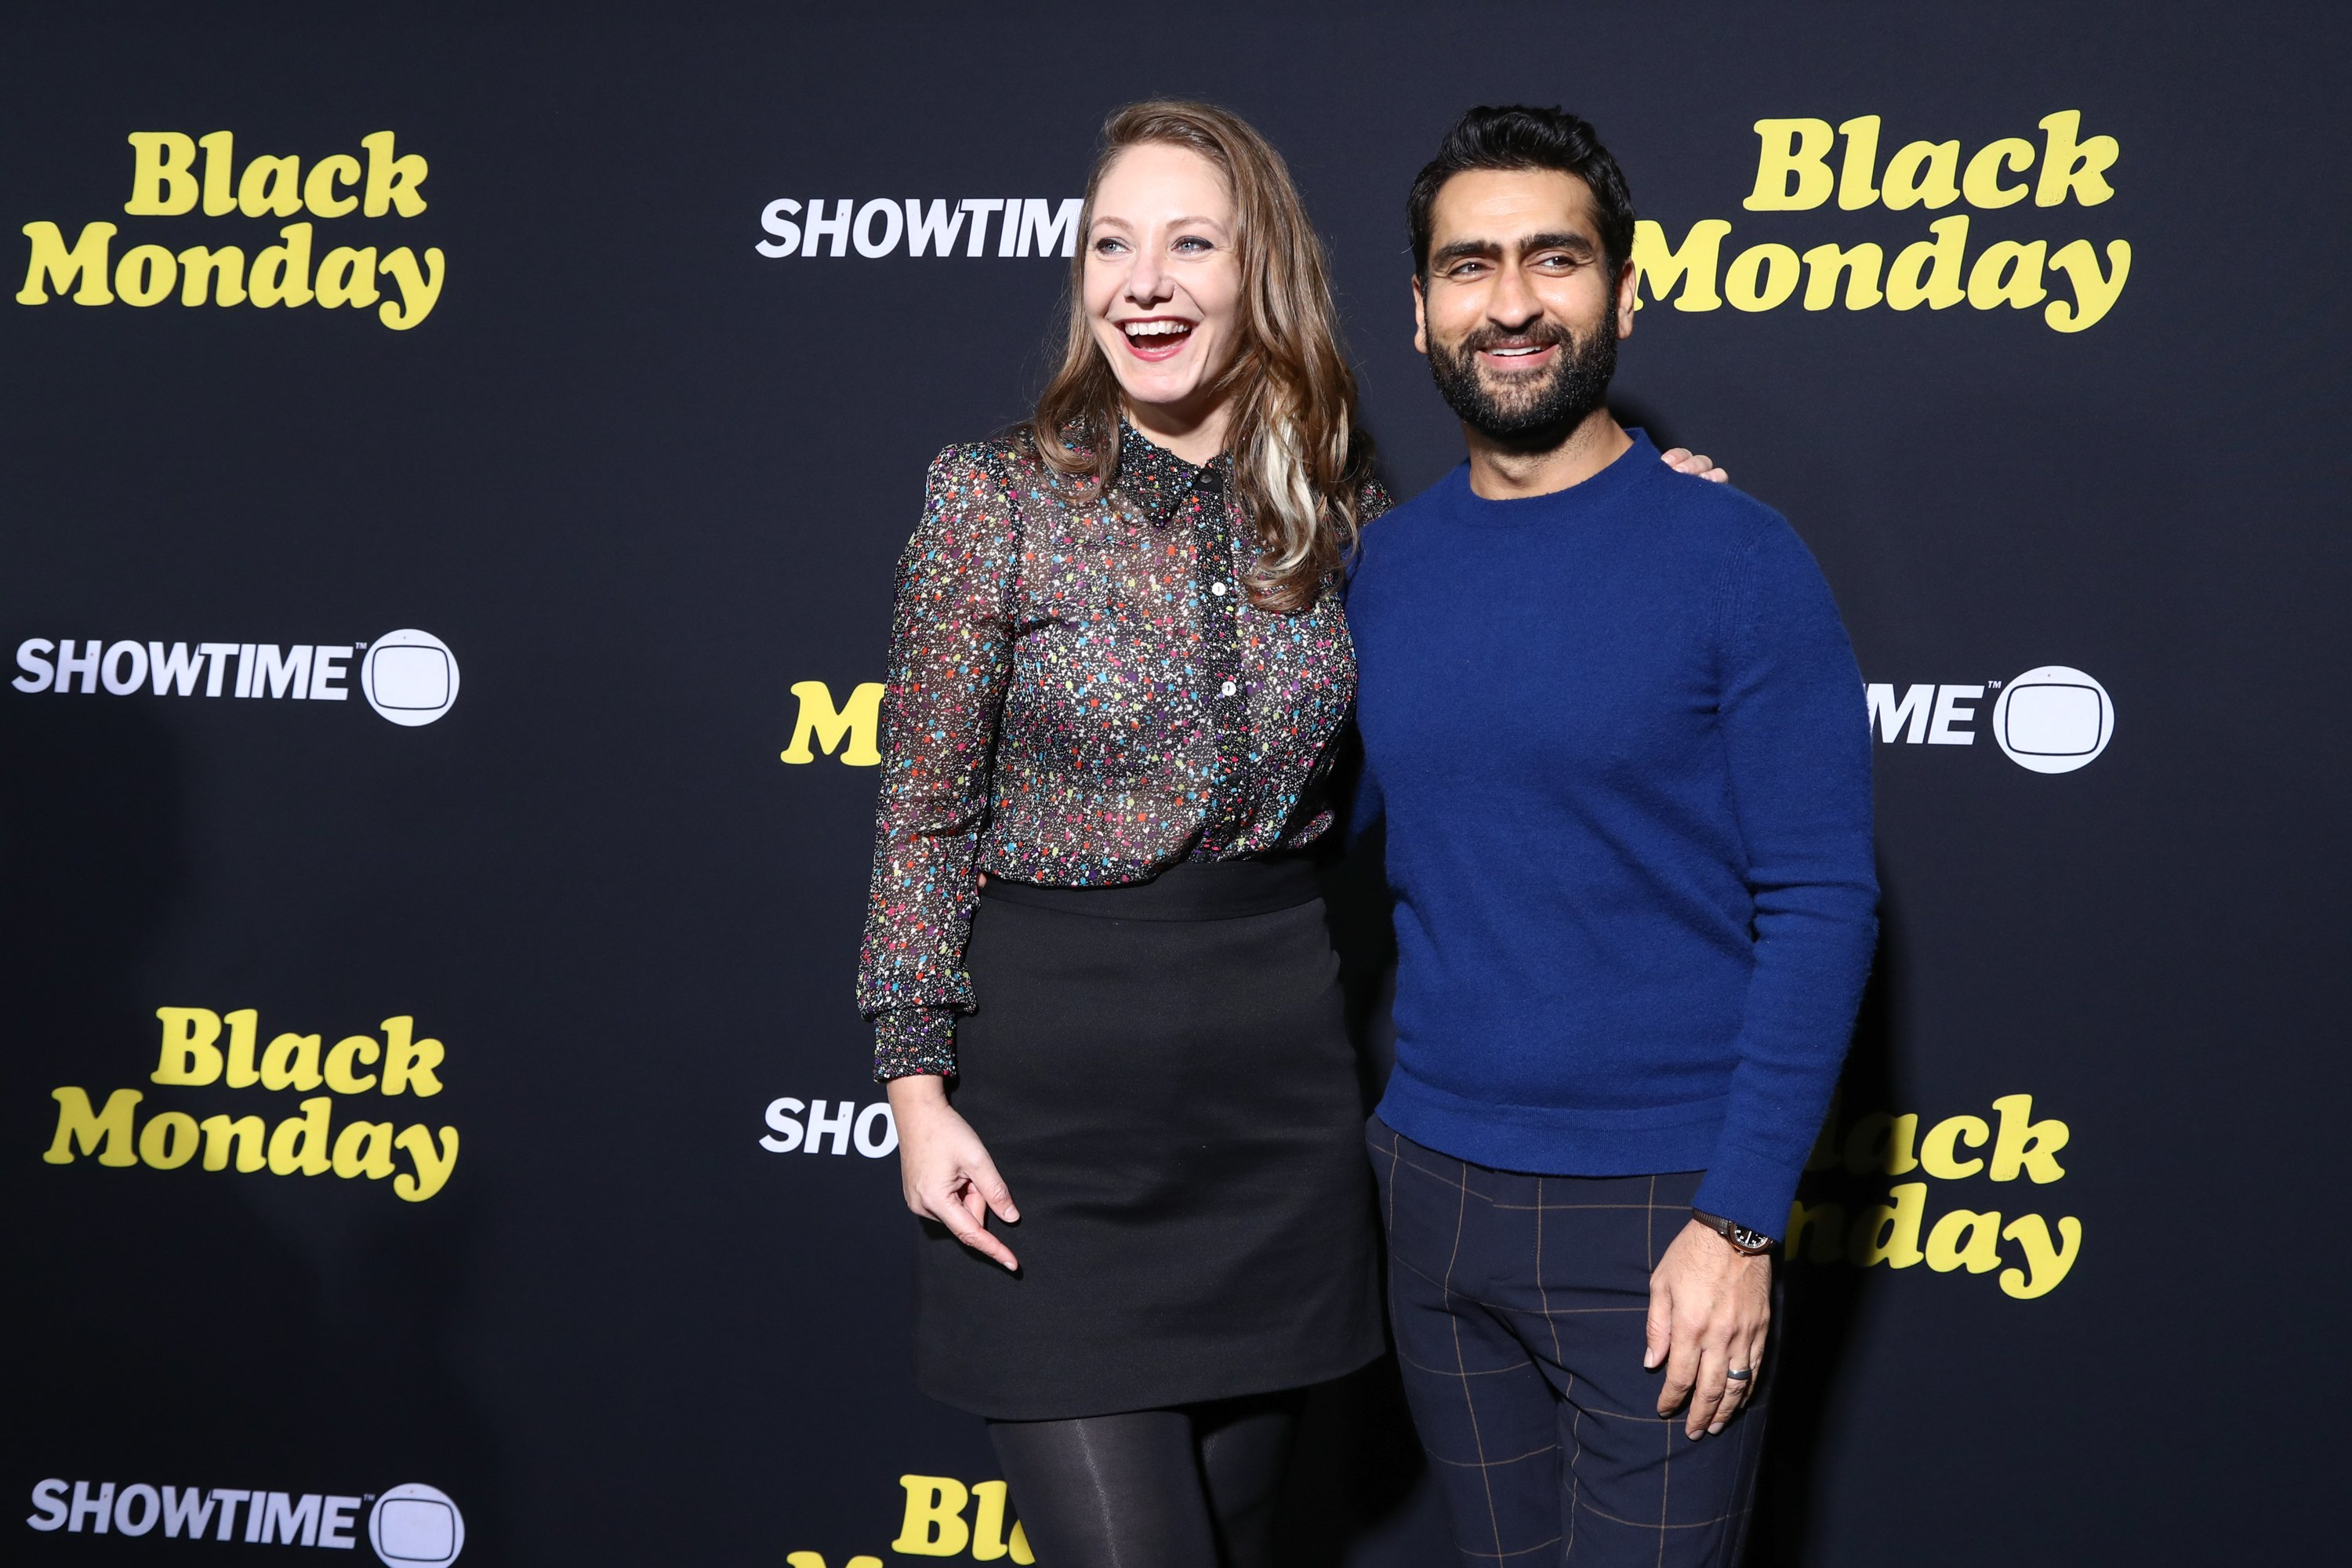 """Emily V. Gordon and Kumail Nanjiani at the premiere of Showtime's """"Black Monday"""" in January 2019 in Los Angeles.   Photo: Getty Images"""